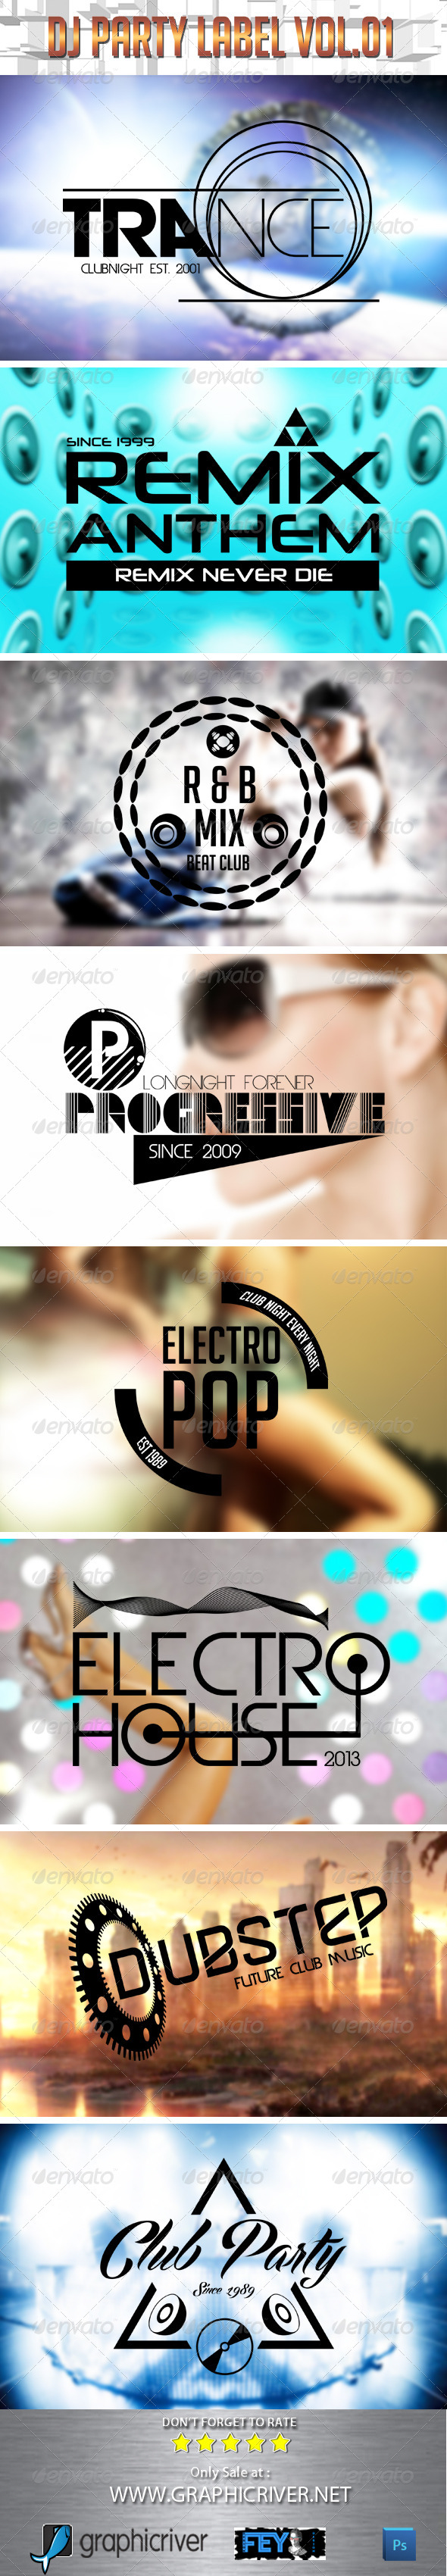 GraphicRiver Dj Party Label Vol.01 5415574